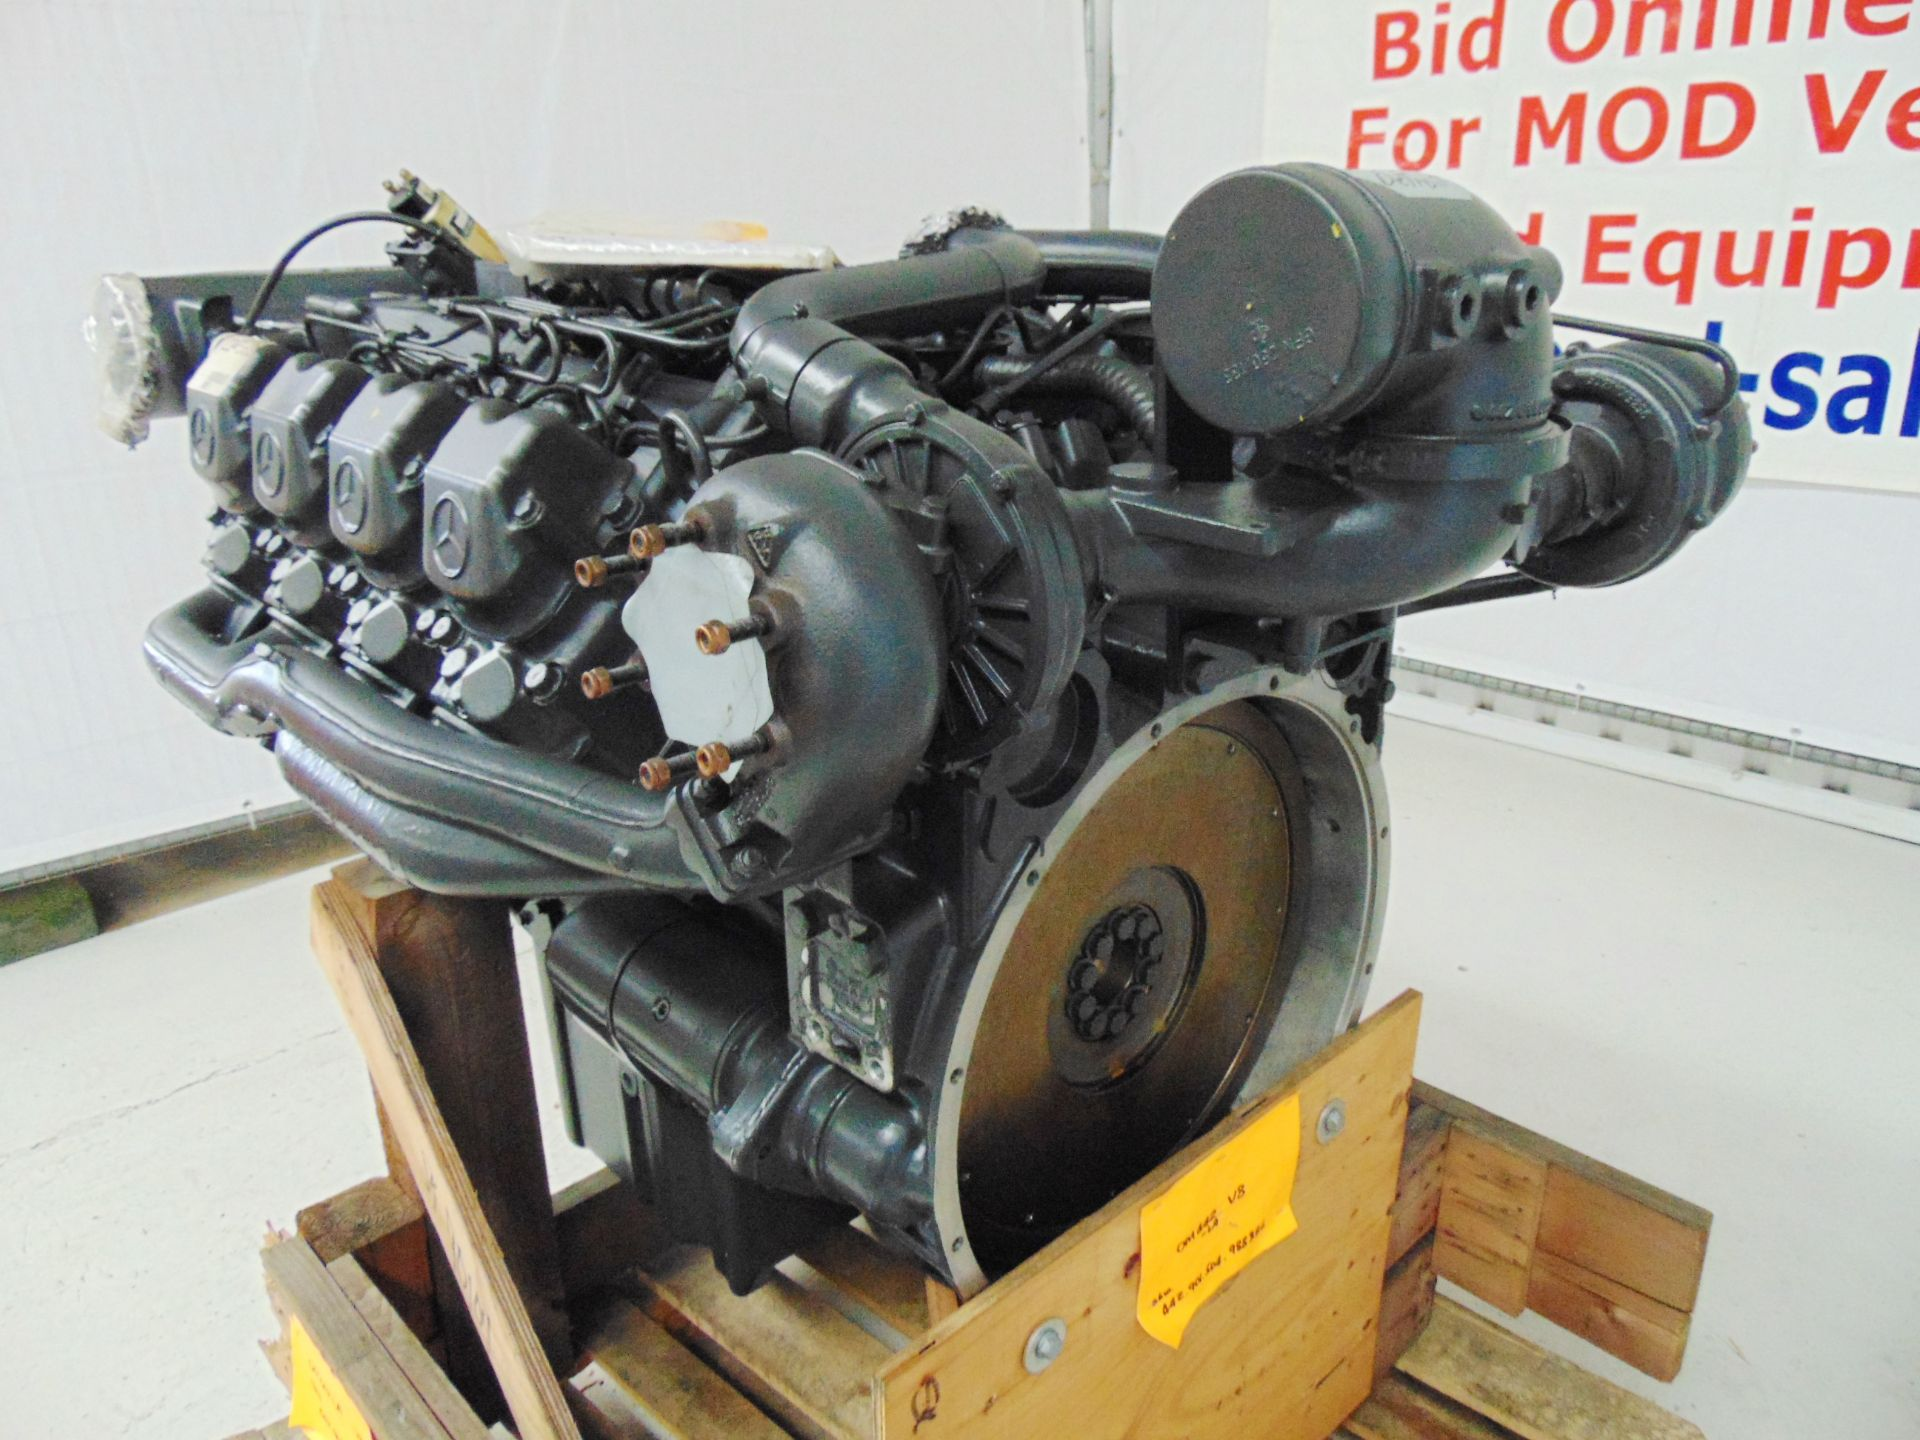 Lot 1 - Brand New & Unused Mercedes-Benz OM442LA V8 Twin Turbo Diesel Engine